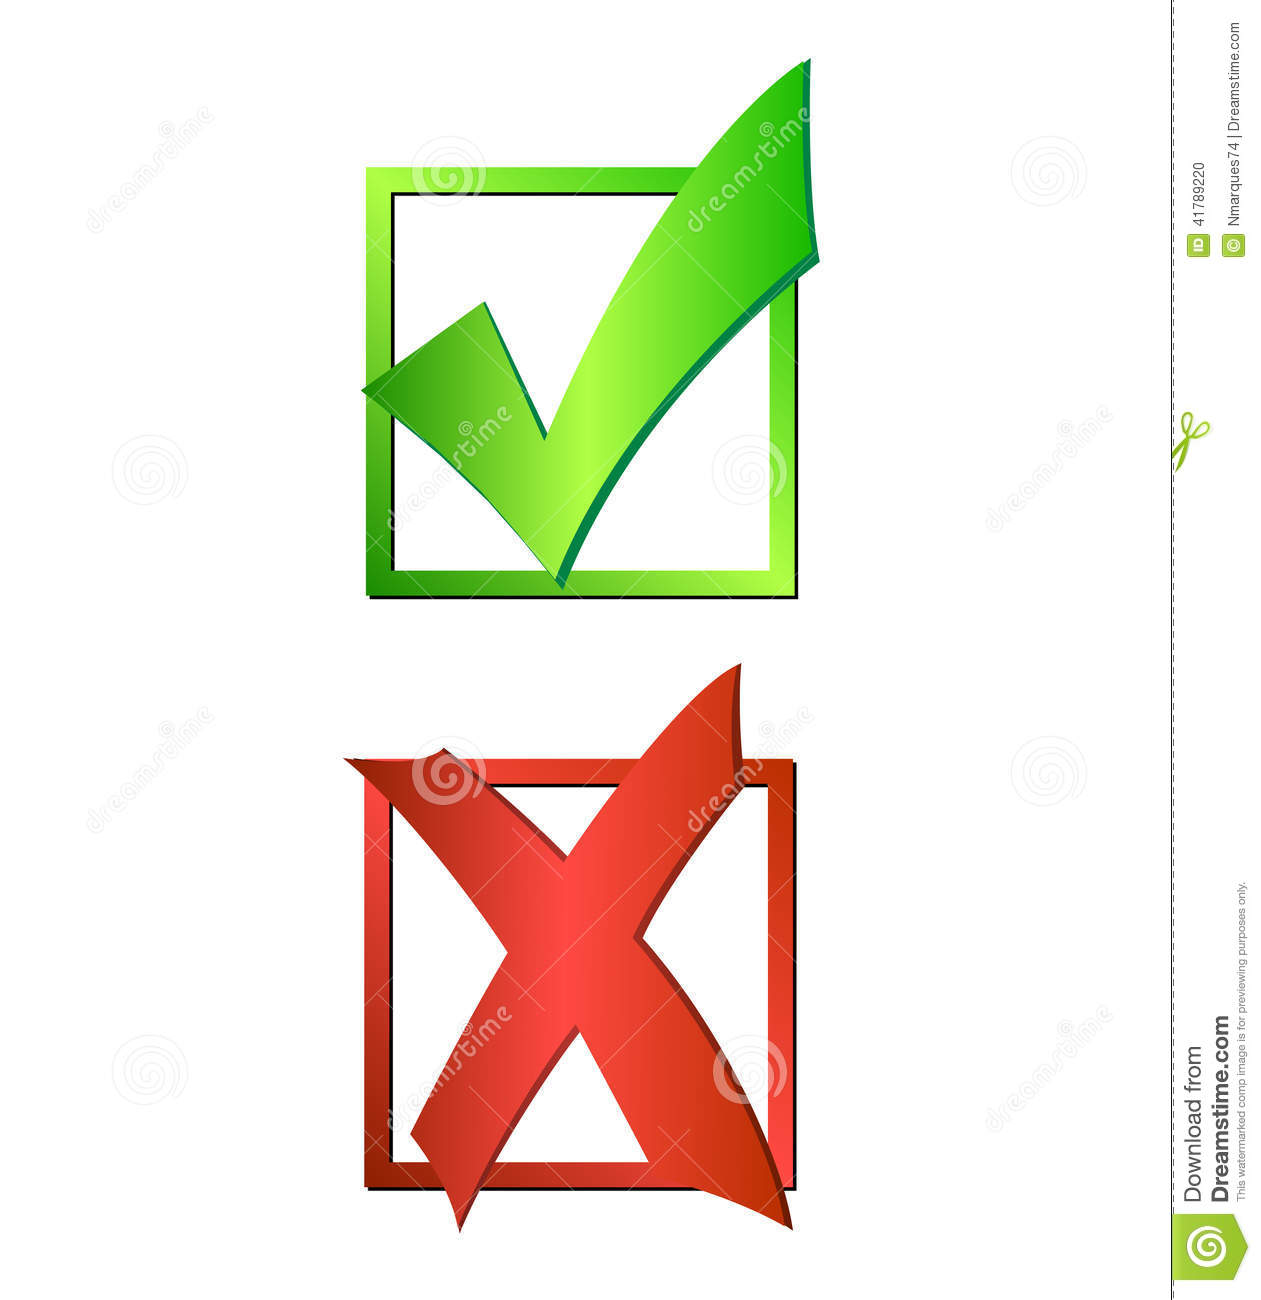 Check Uncheck Stock Vector - Image: 41789220 X And Check Icon